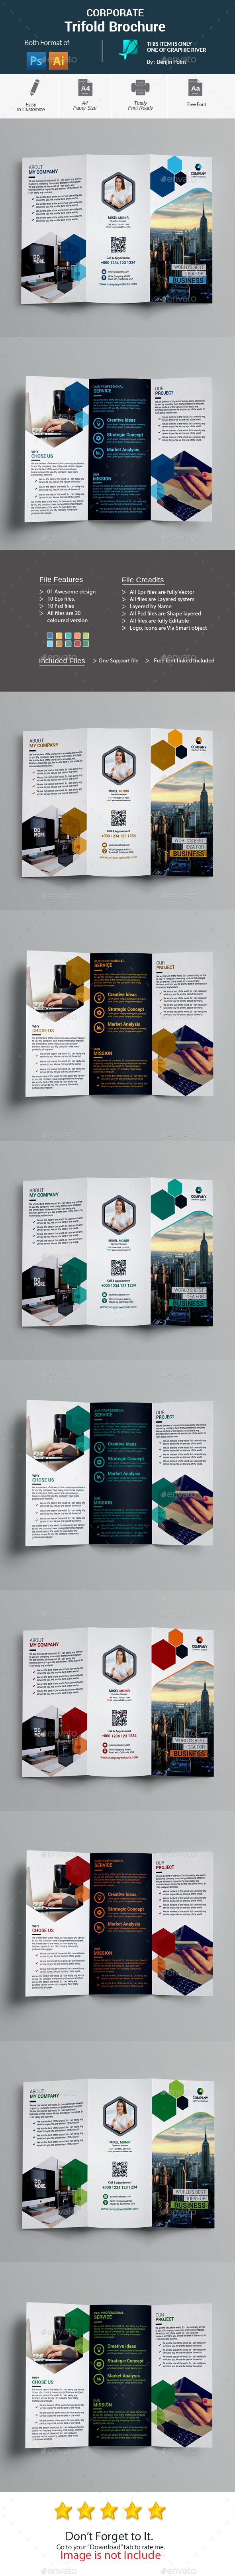 Corporate #Trifold #Brochure - #Corporate Brochures Download here:  https://graphicriver.net/item/corporate-trifold-brochure/20291364?ref=alena994